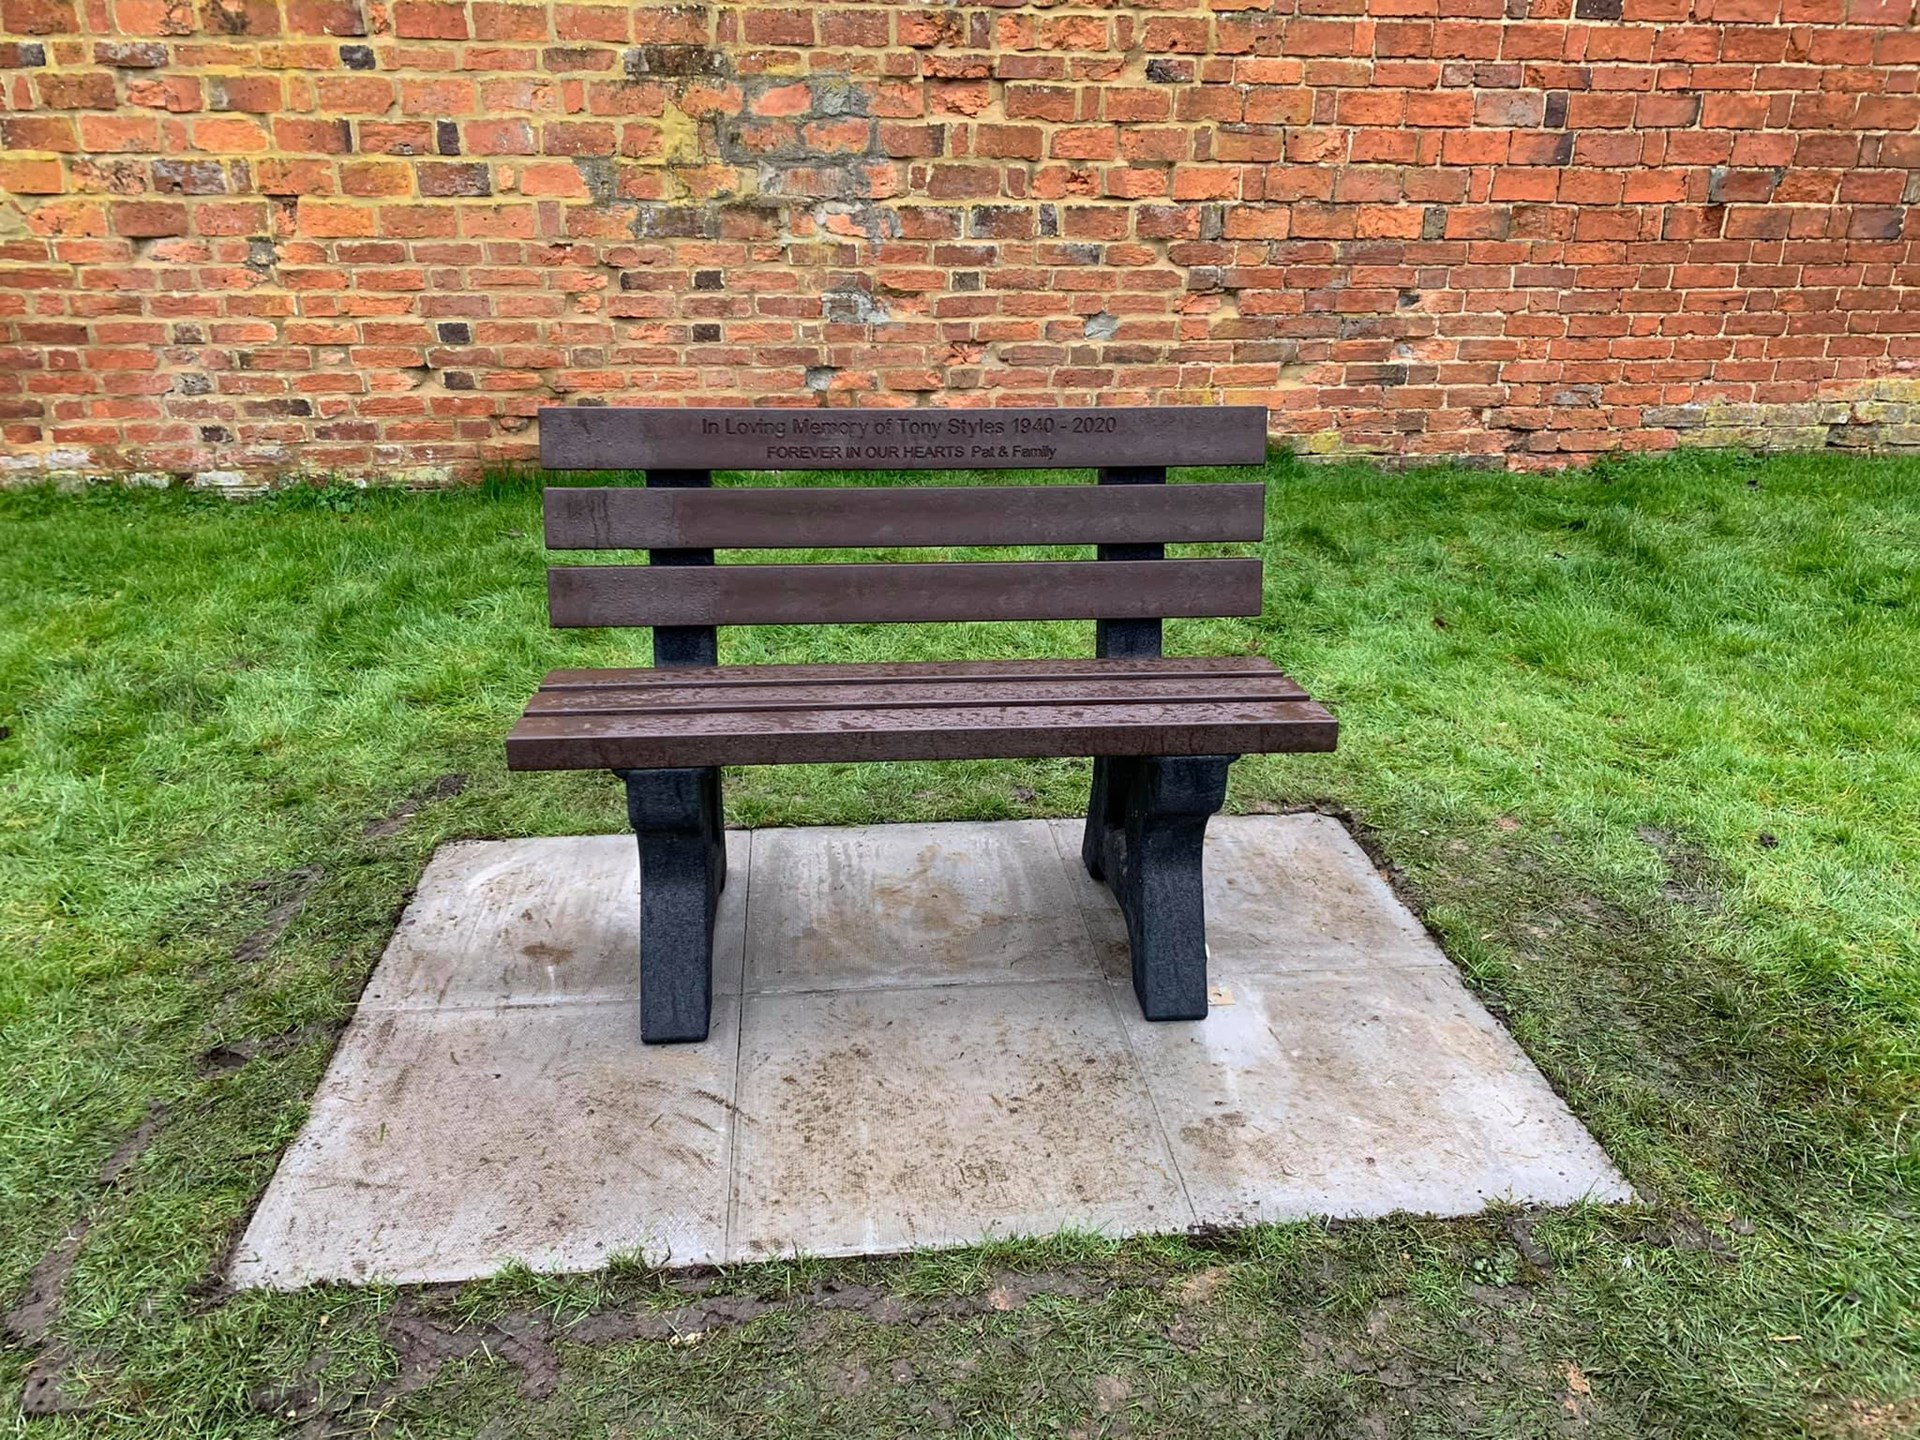 New bench seat in memory of Tony Styles, who contributed so much to the community, installed on the play area.